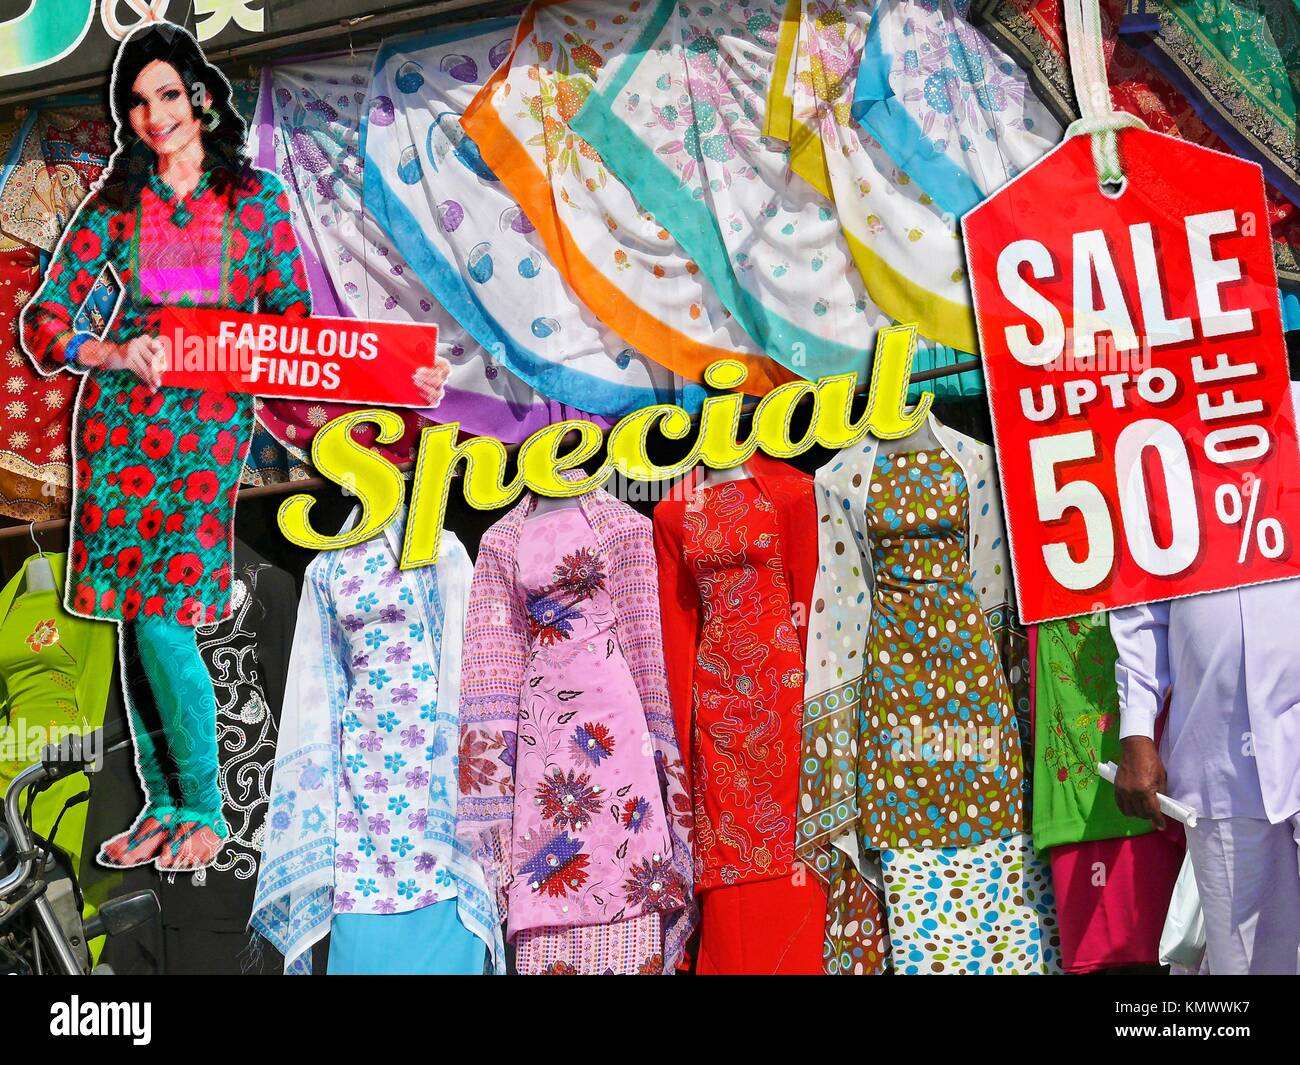 0a4100327e The Mannequins & Traditional Cloths, Punjabi dresses arranged on window  display with 50 % Discount board at a shop, India